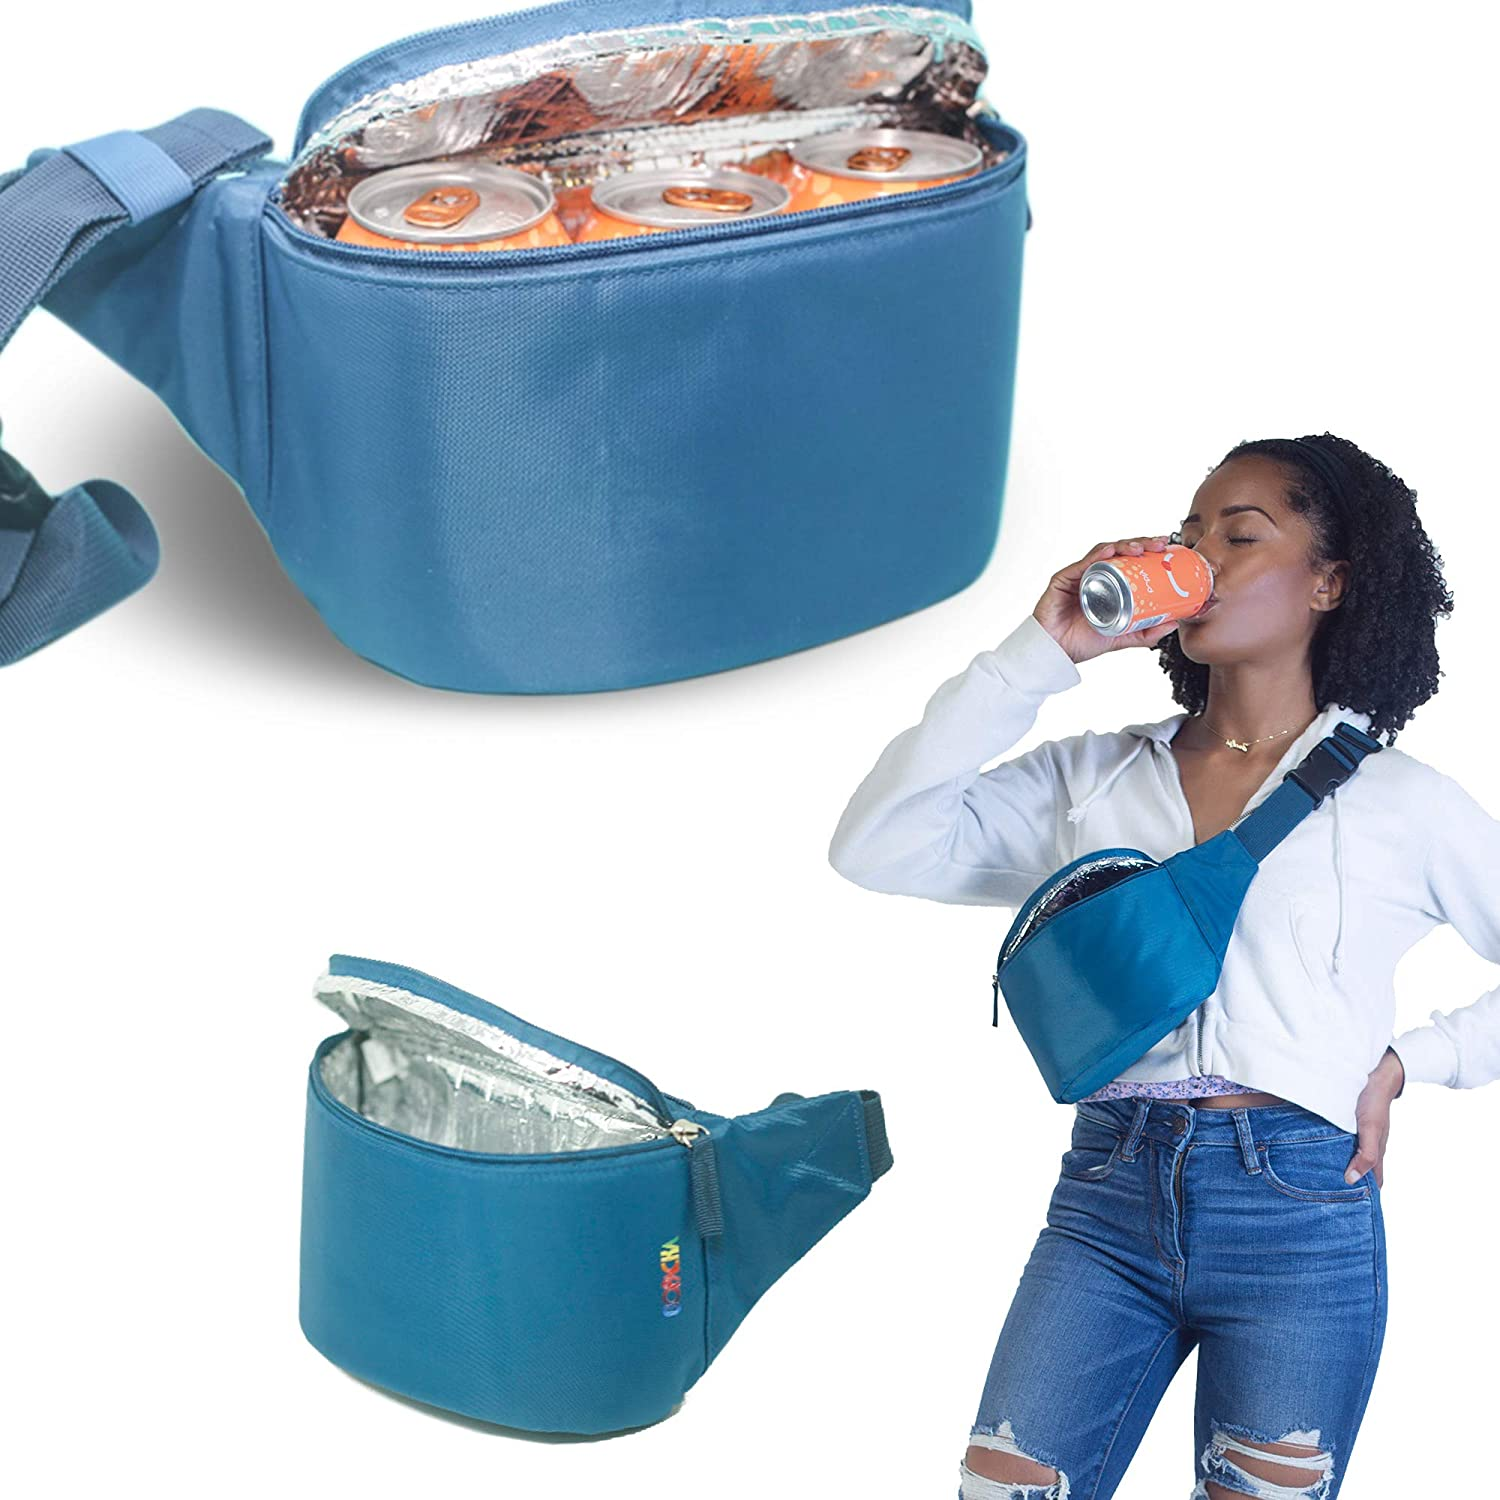 Gopacka Insulated Fanny Pack Cooler for Outdoors, Travel, Camping, Hiking, Sports Waist Pack Bag with Adjustable Strap Unisex